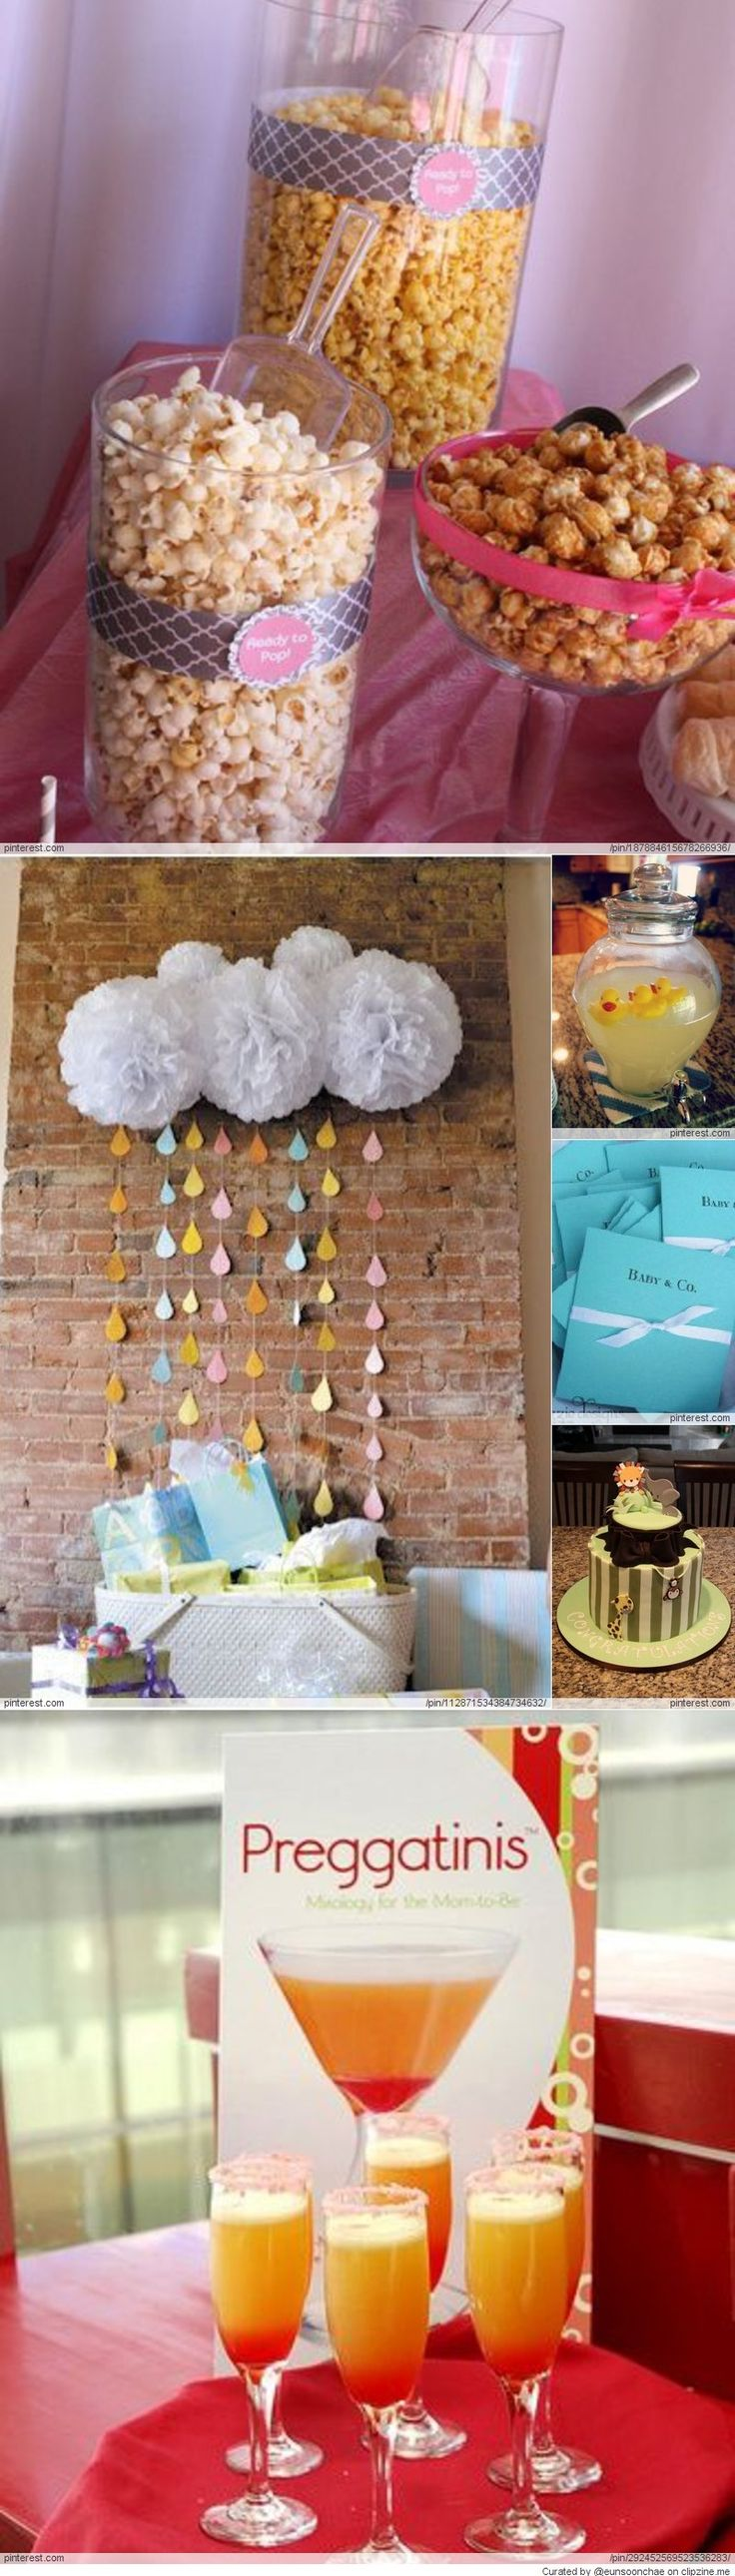 Baby Shower Decorations & Themes. Love the Preggatini idea! Ready to POP station